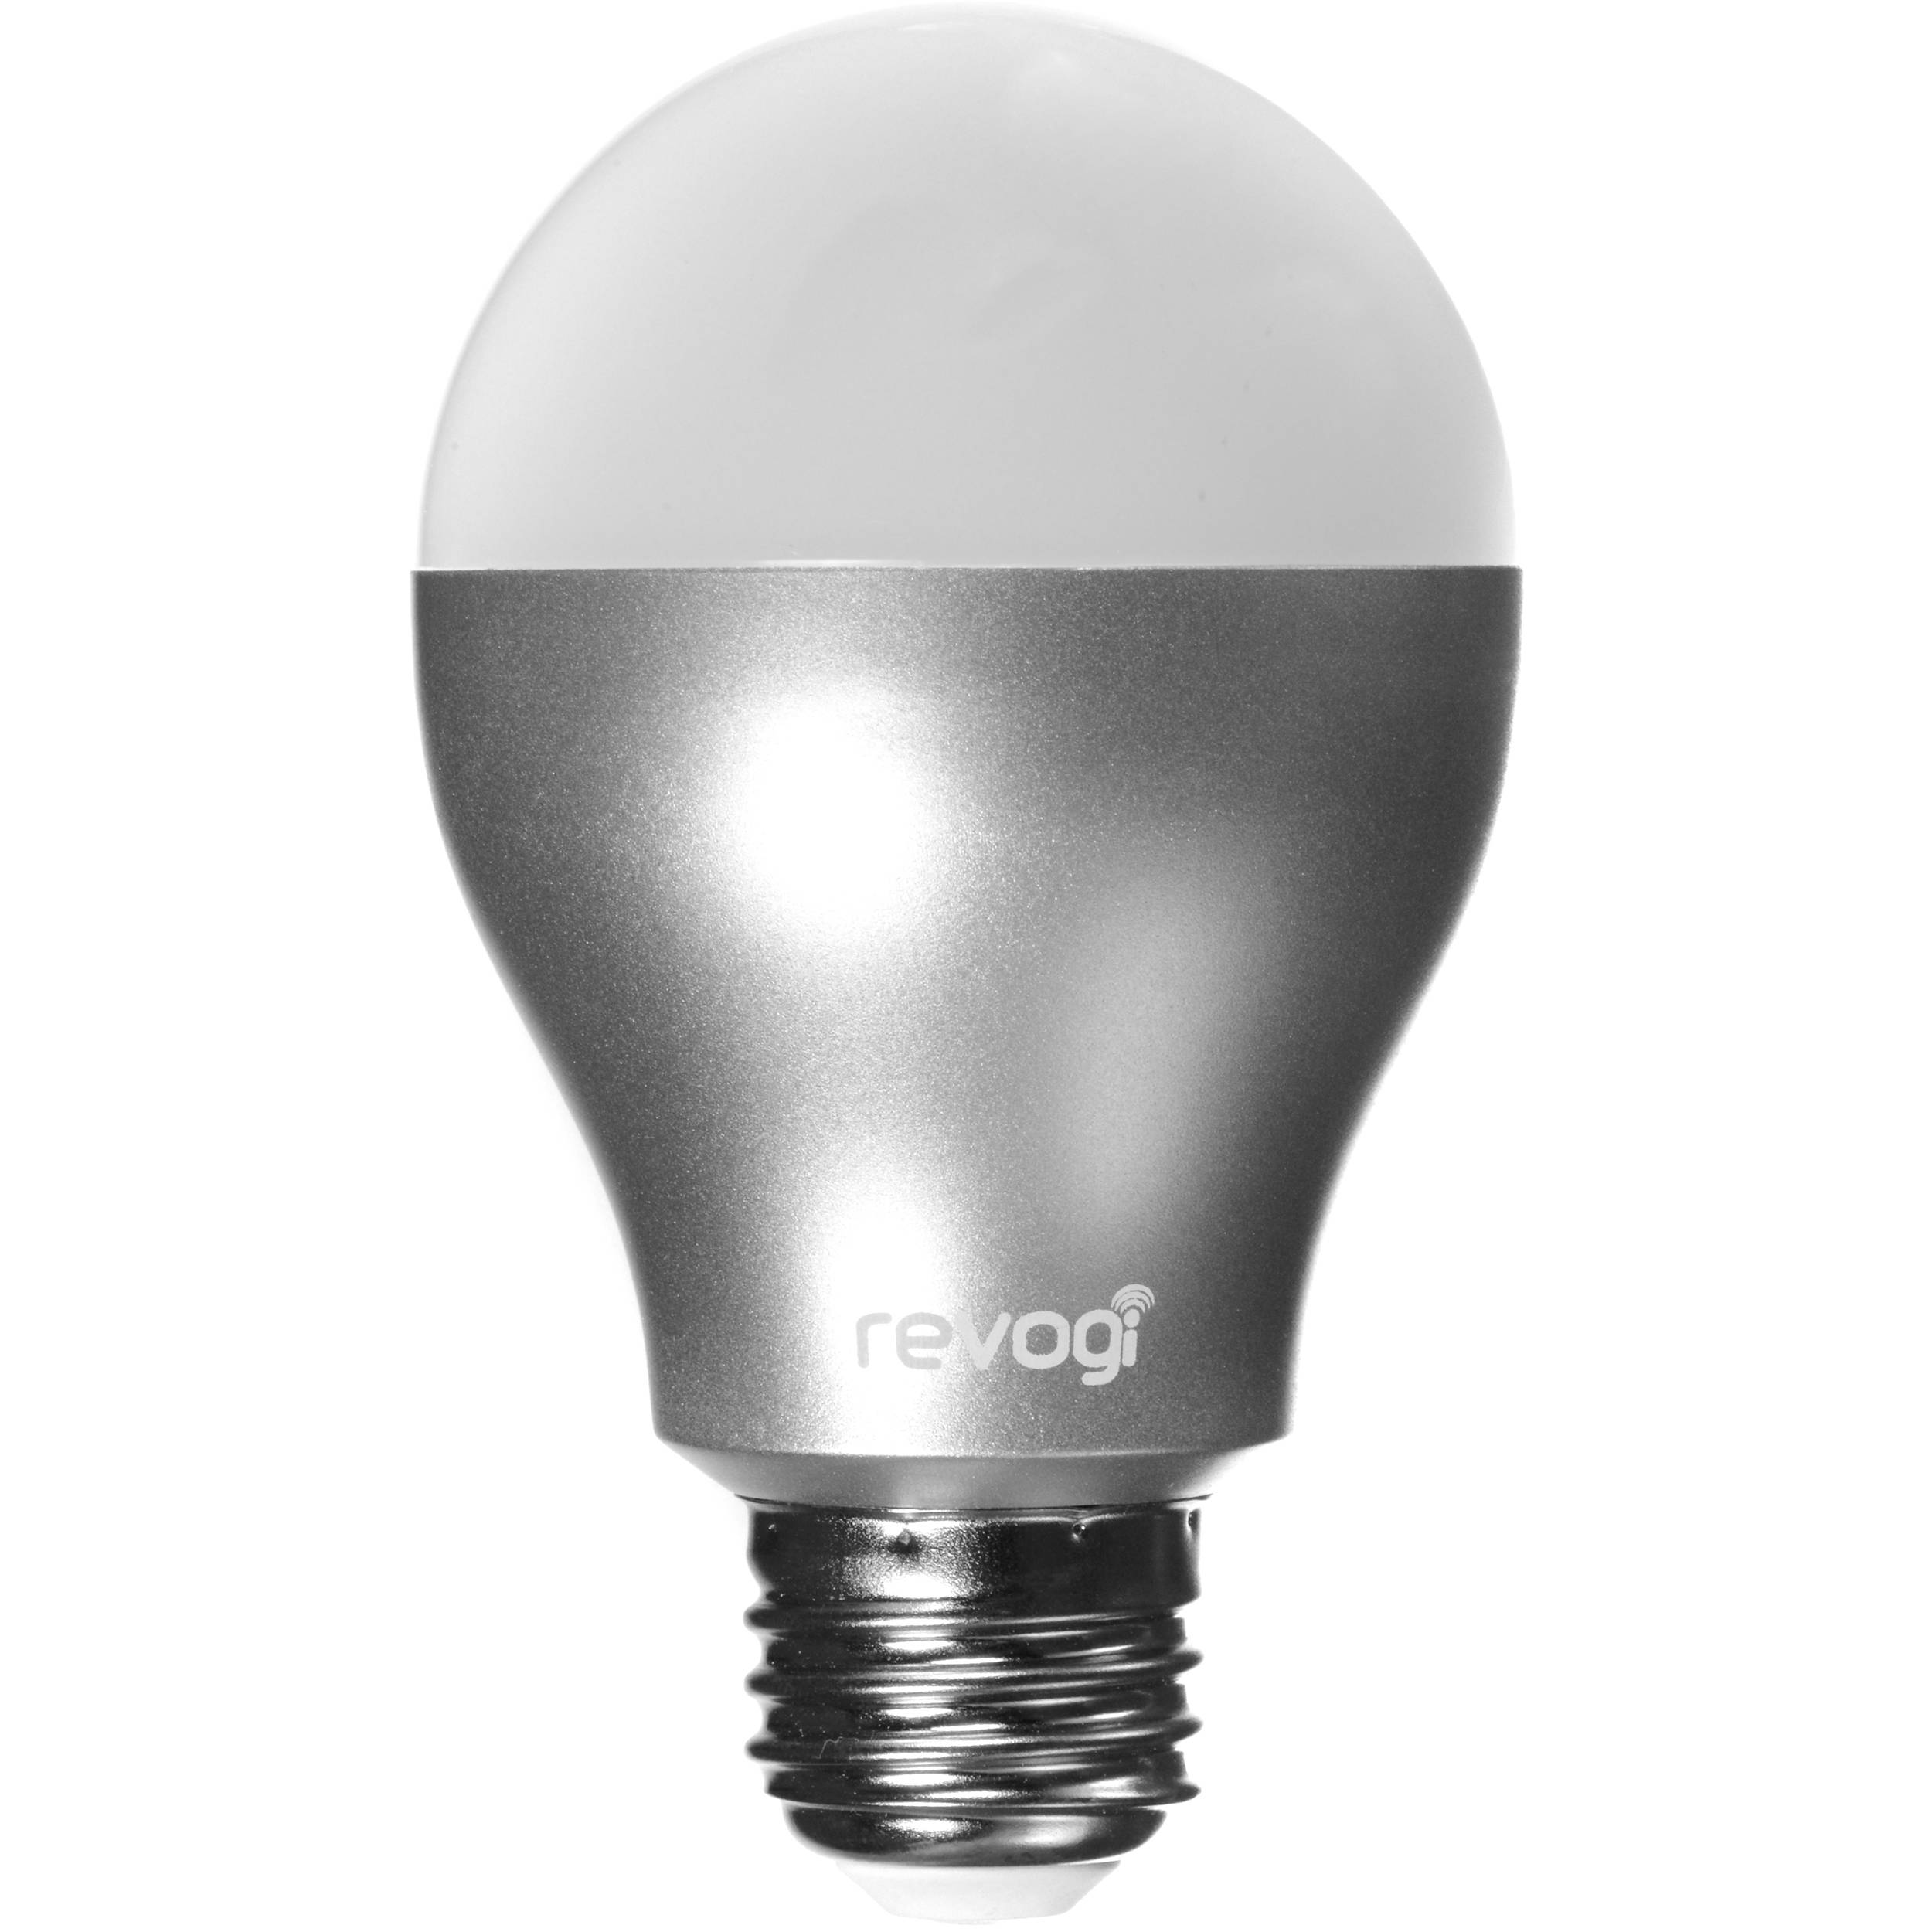 Revogi Delite 2 Smart Led Bulb Ltb012 B H Photo Video